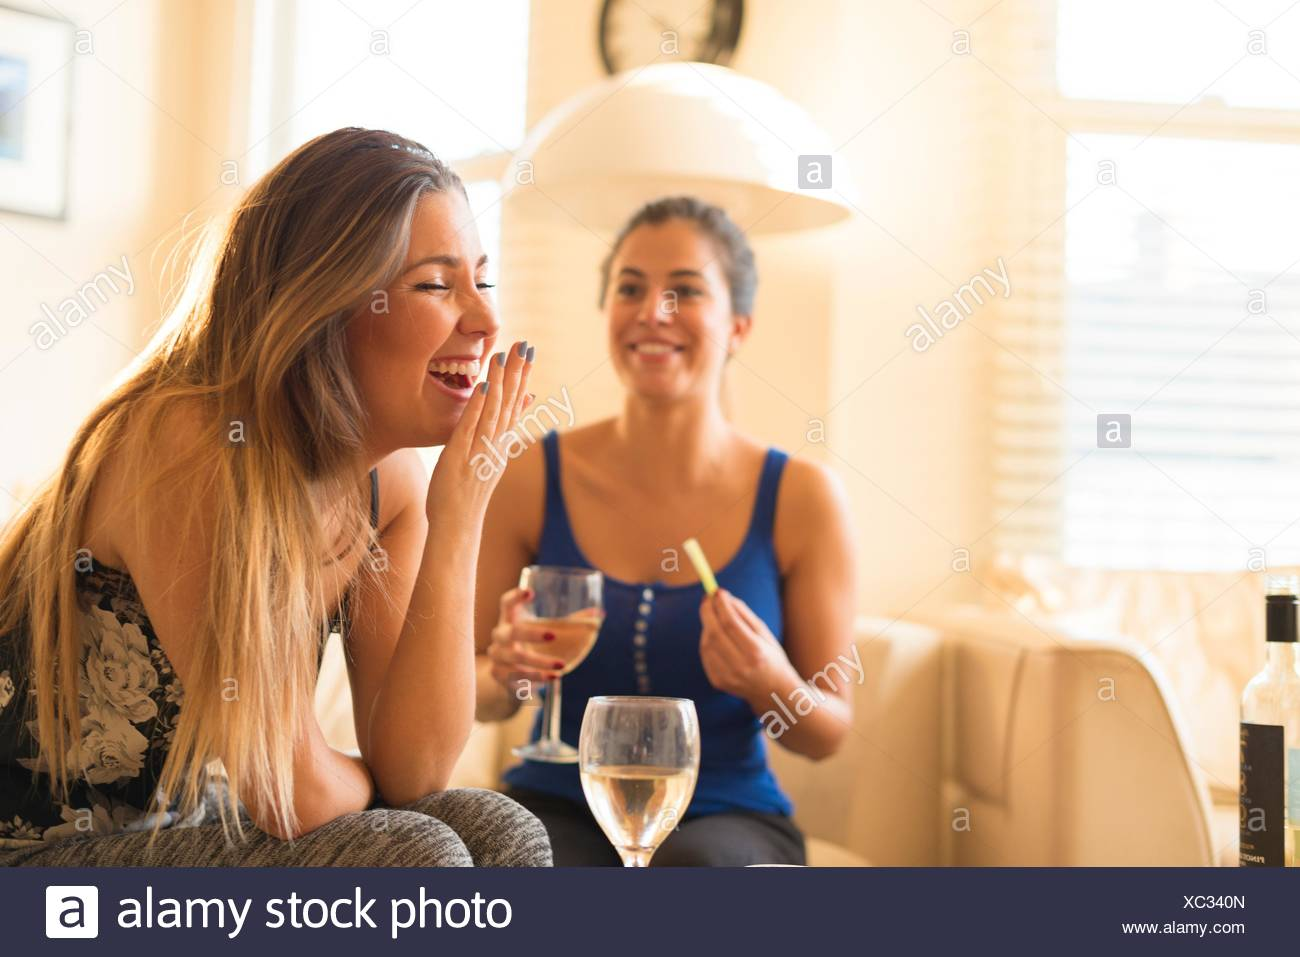 Two young woman having girls night in, drinking and laughing Stock Photo